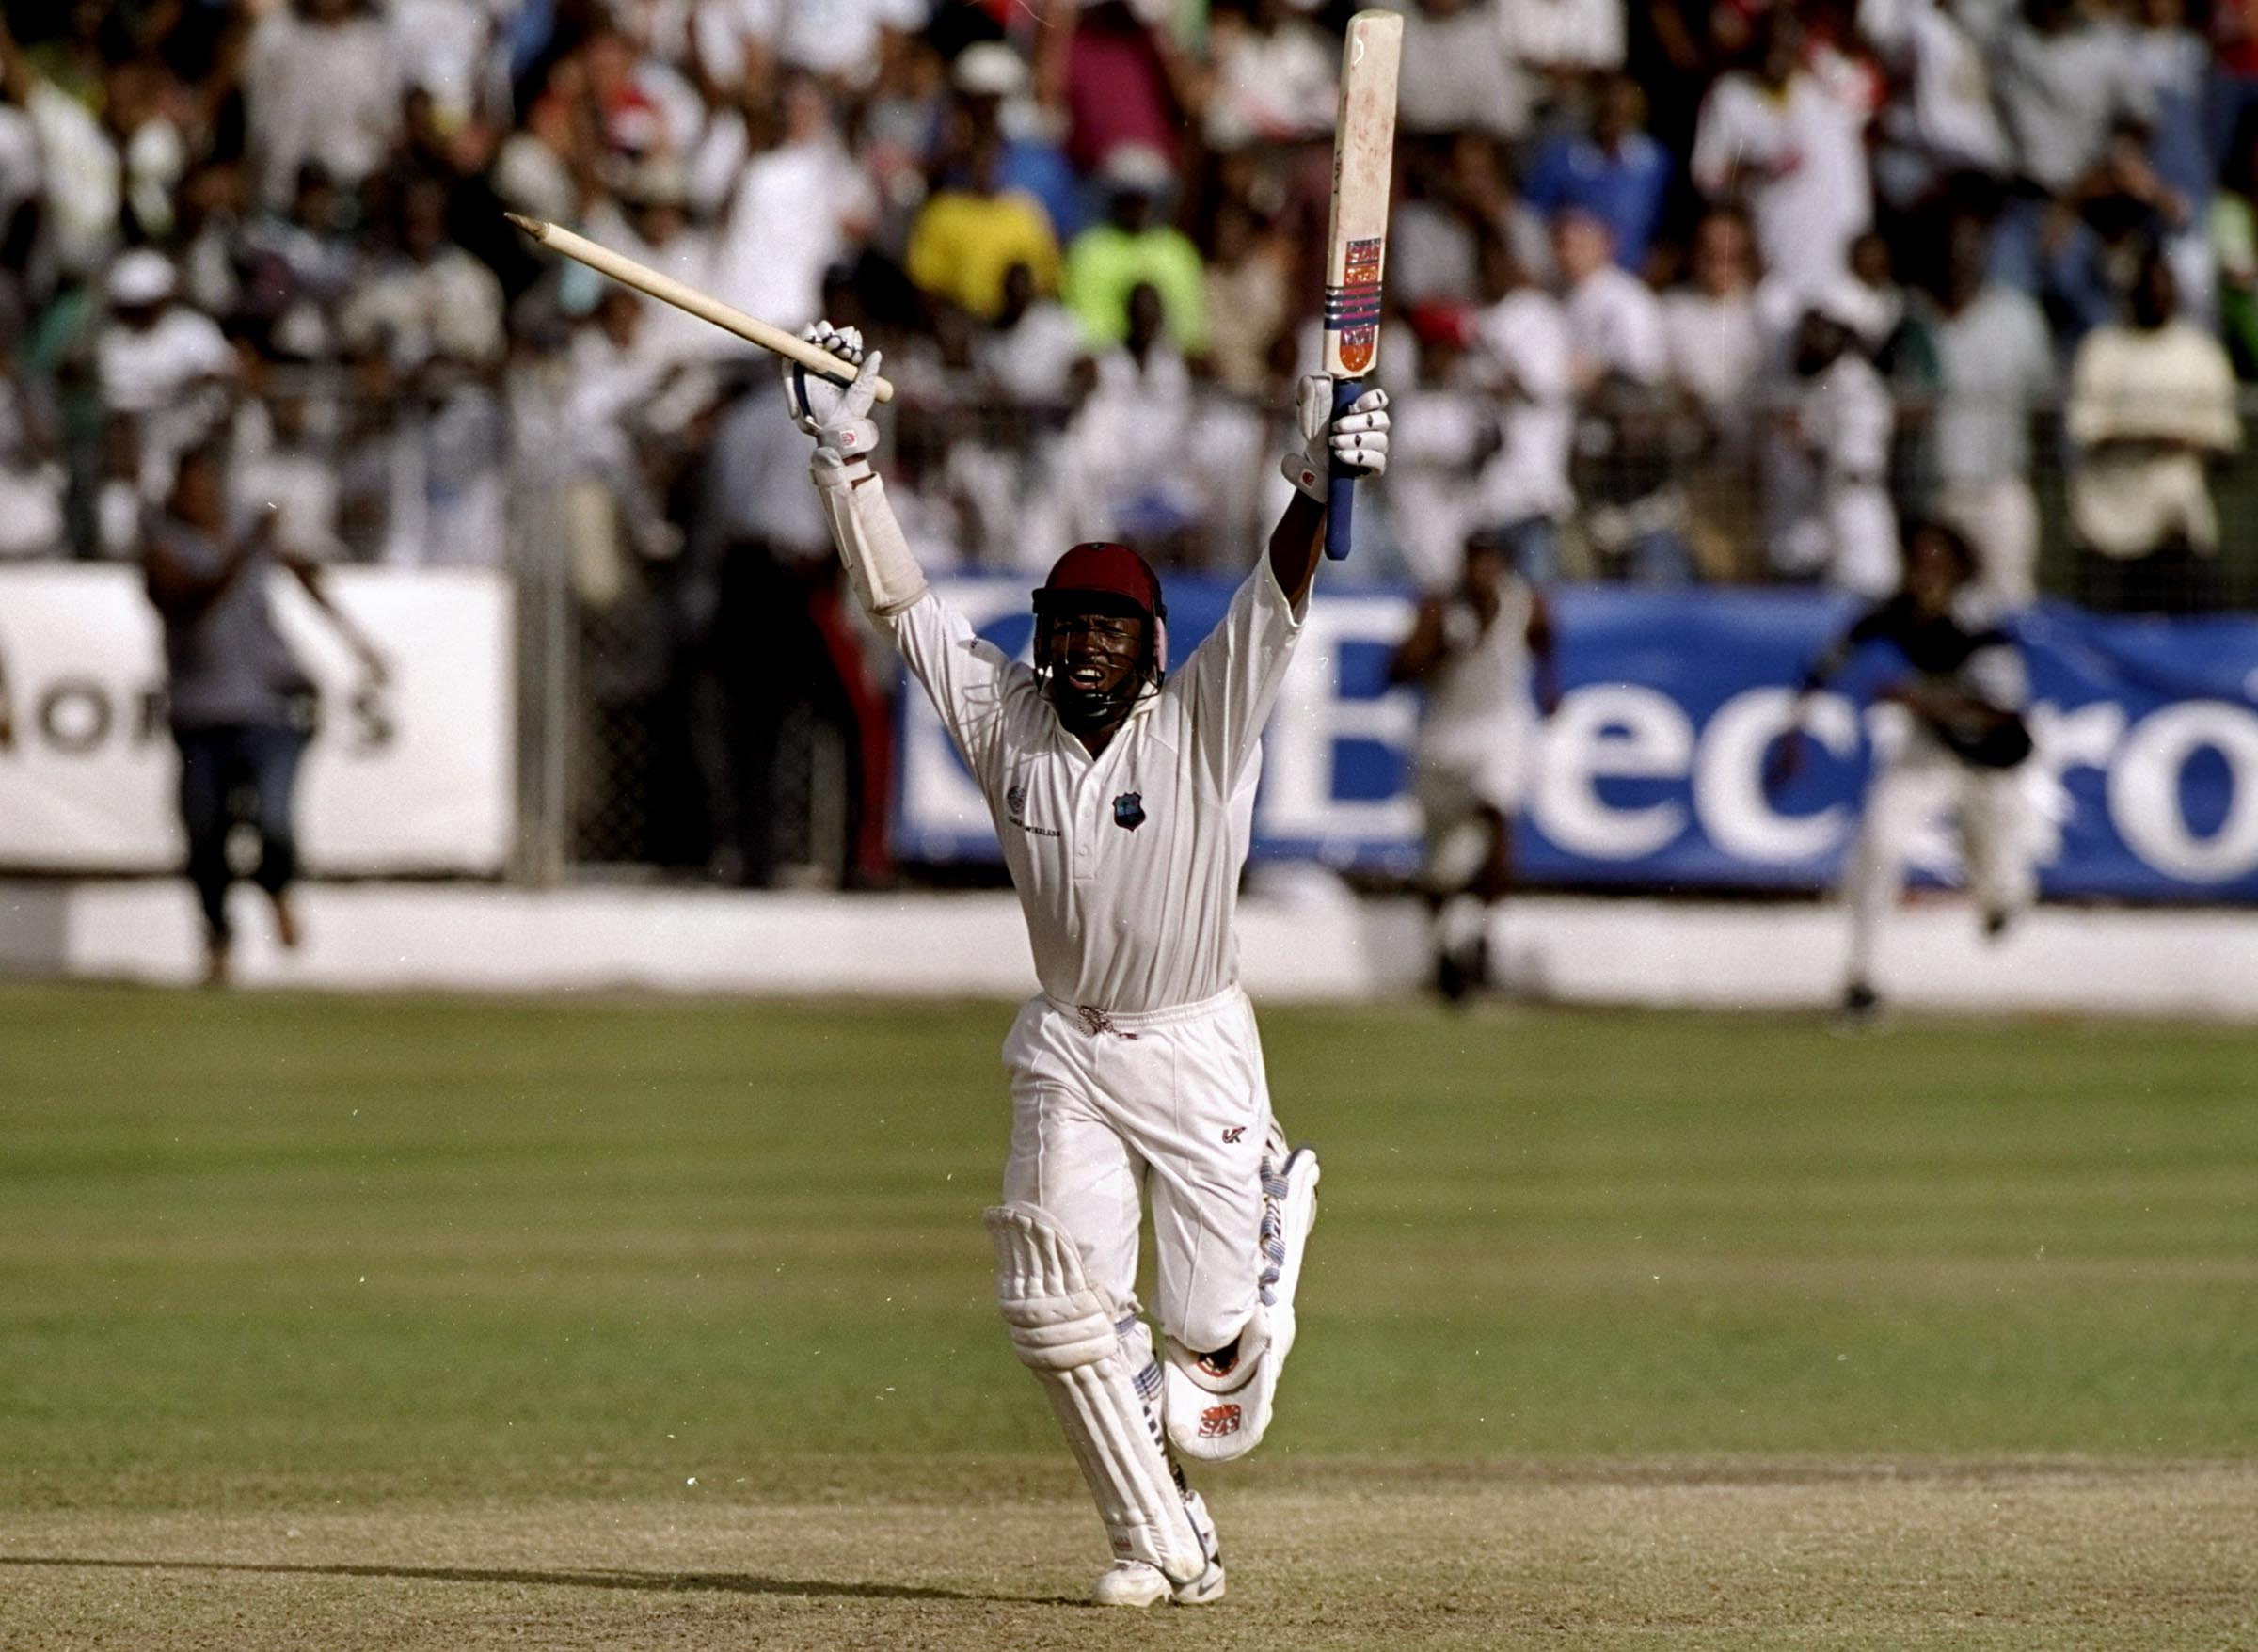 Lara celebrates one of the great all-time Test innings // Getty